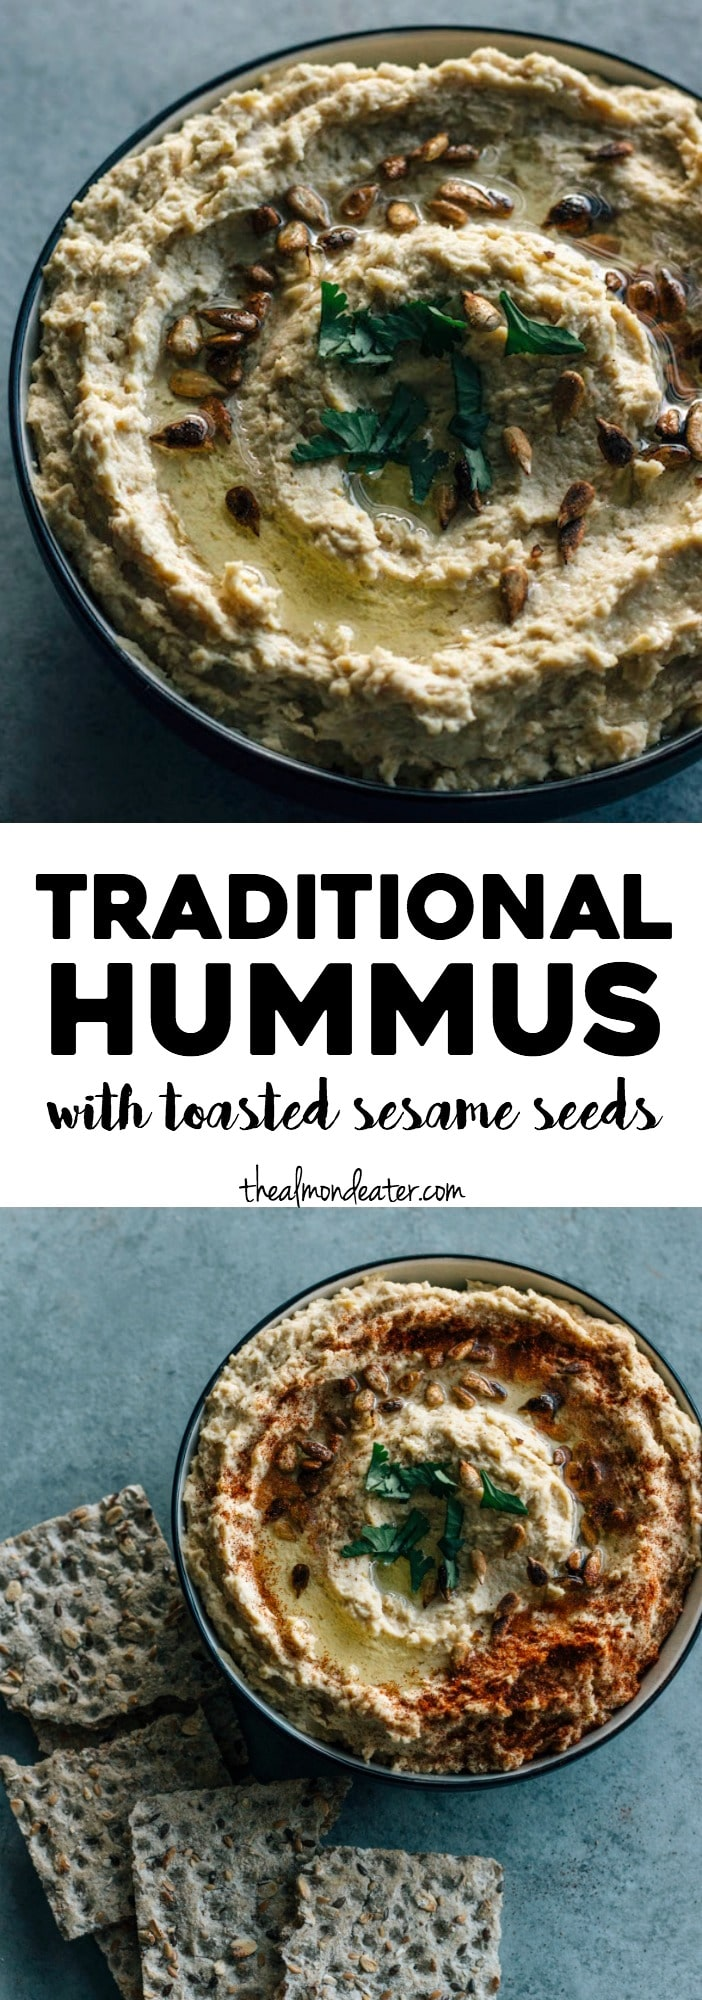 Traditional Hummus | A simple hummus recipe topped with toasted sesame seeds--ready in just 5 minutes! | thealmondeater.com